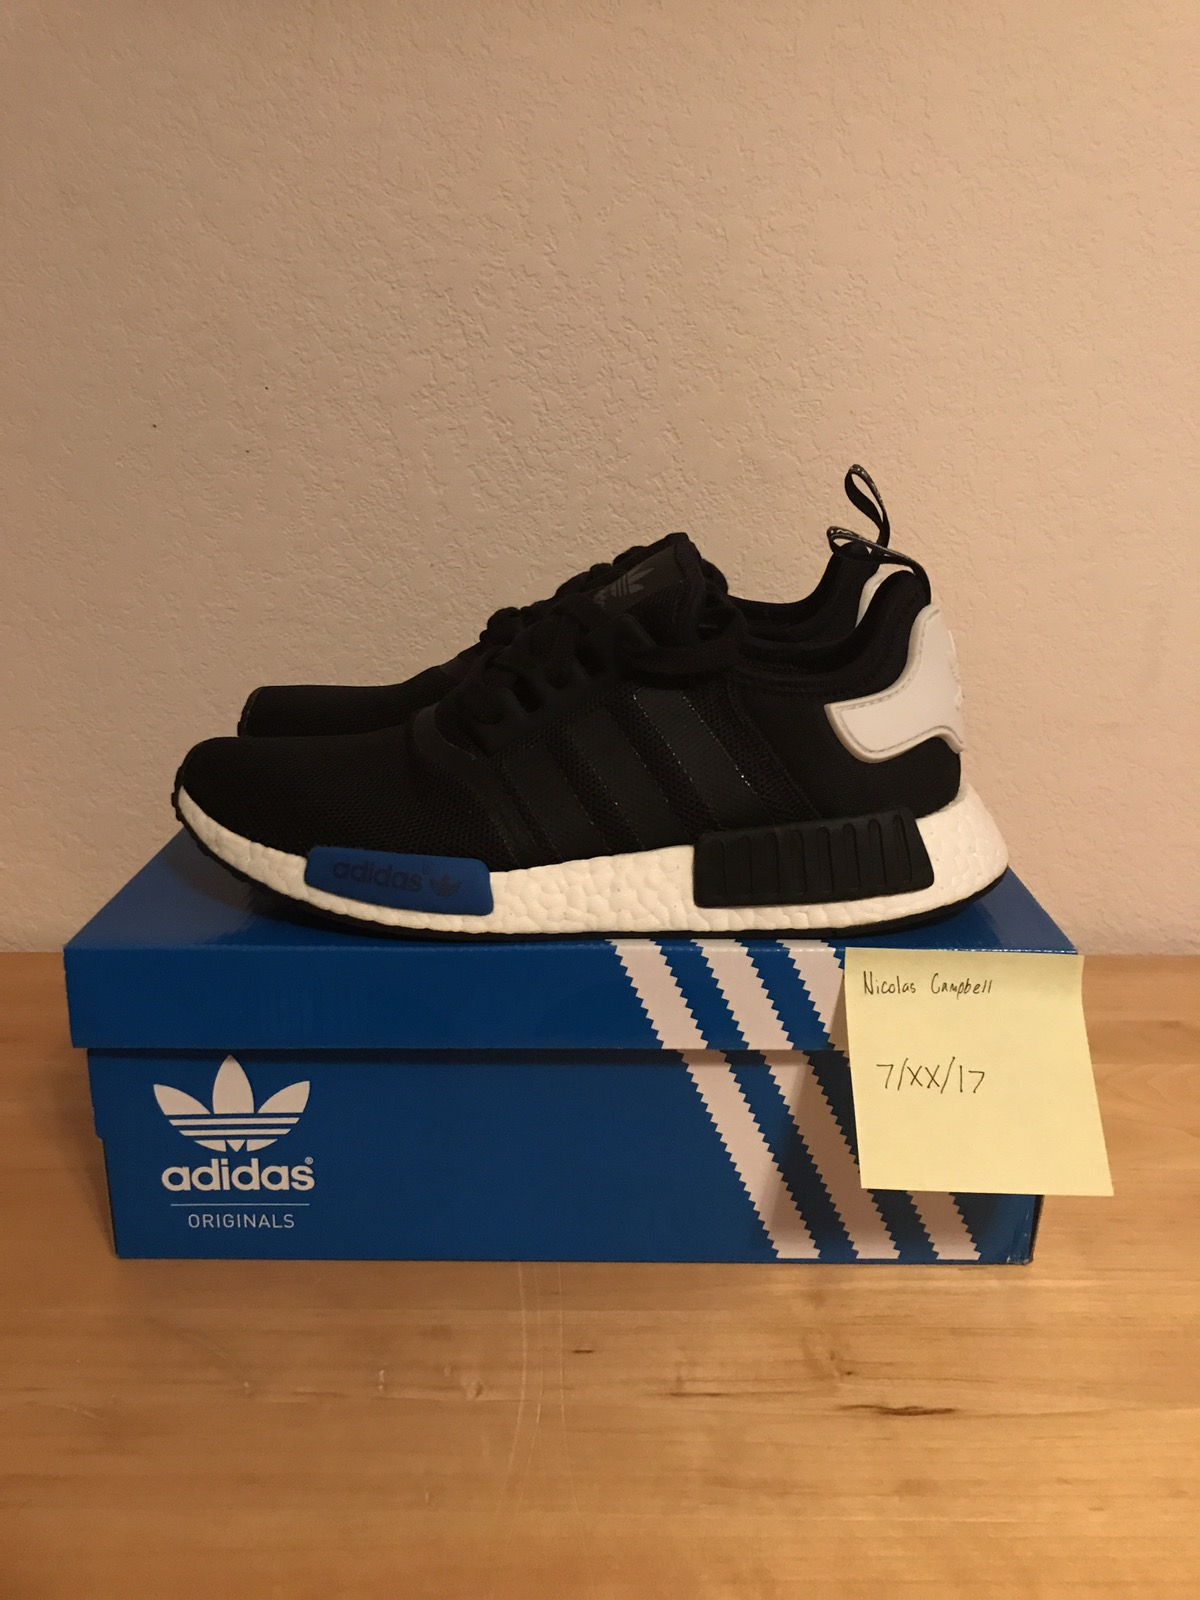 74154ff898514 Adidas NMD Tokyo Blue Size 10 - Low-Top Sneakers for Sale - Grailed